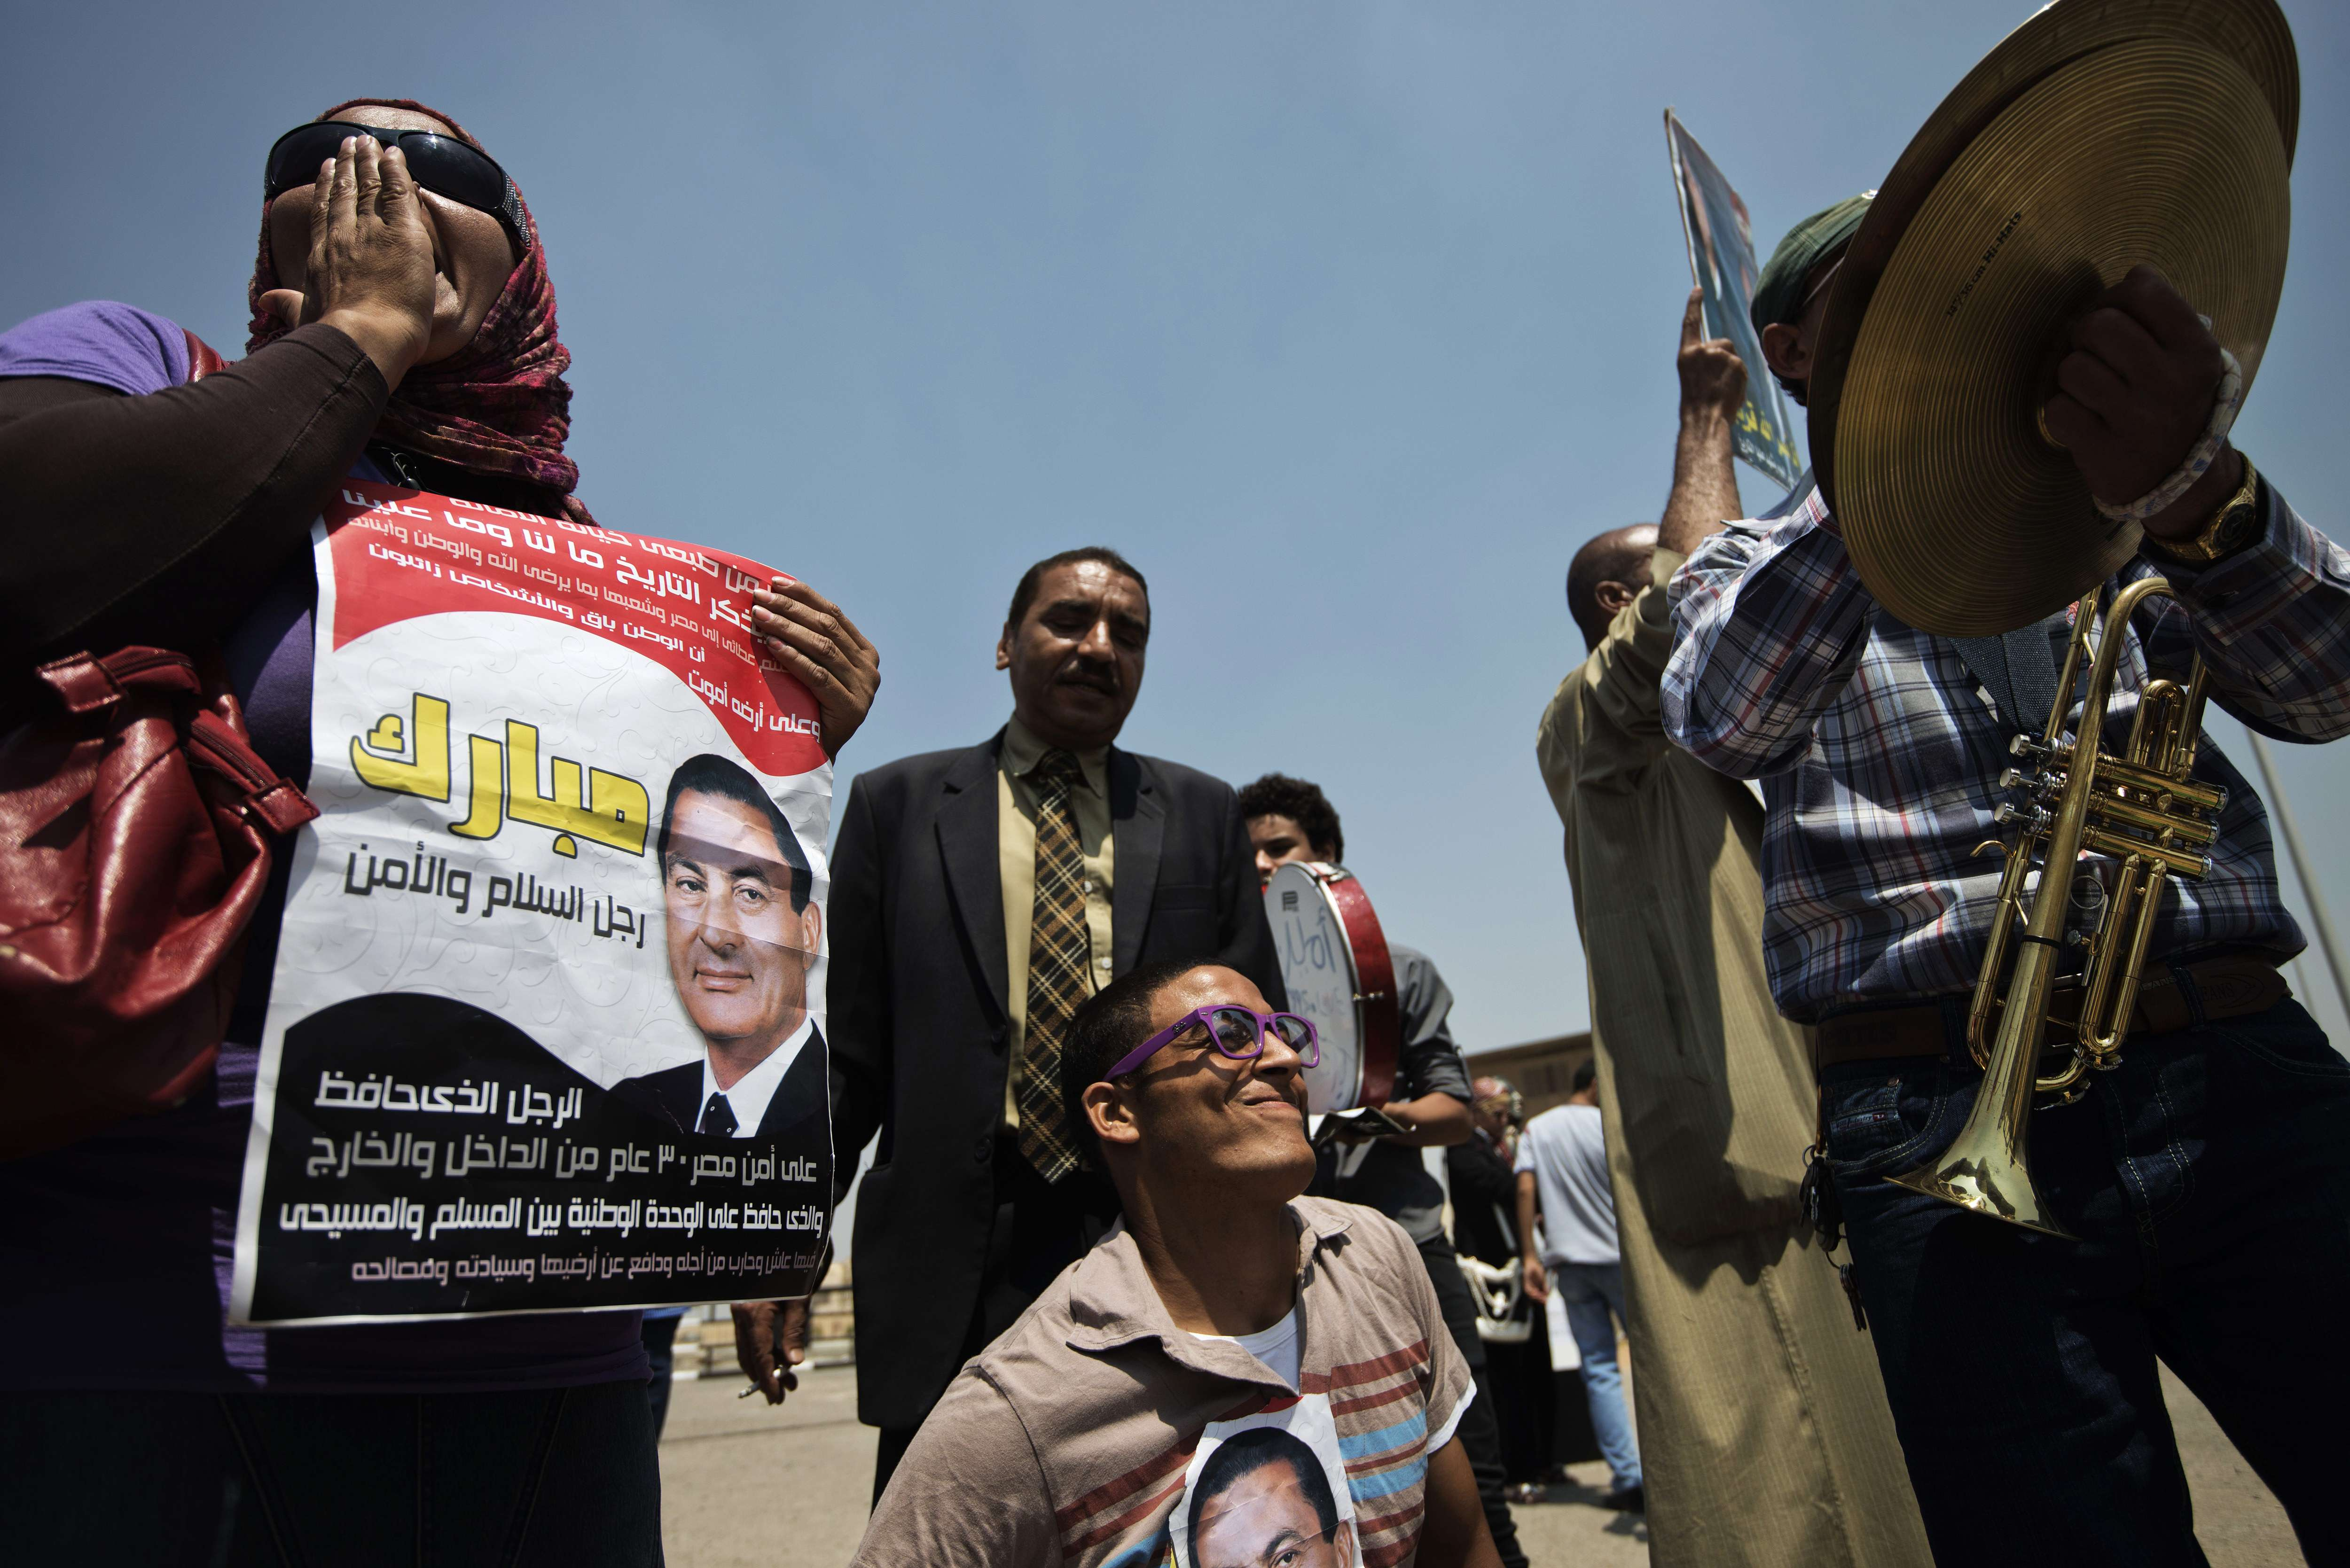 Supporters of ousted Egyptian president Hosni Mubarak (picture) shout slogans outside the police academy in Cairo during a hearing in his retrial on July 6, 2013.  (AFP Photo)